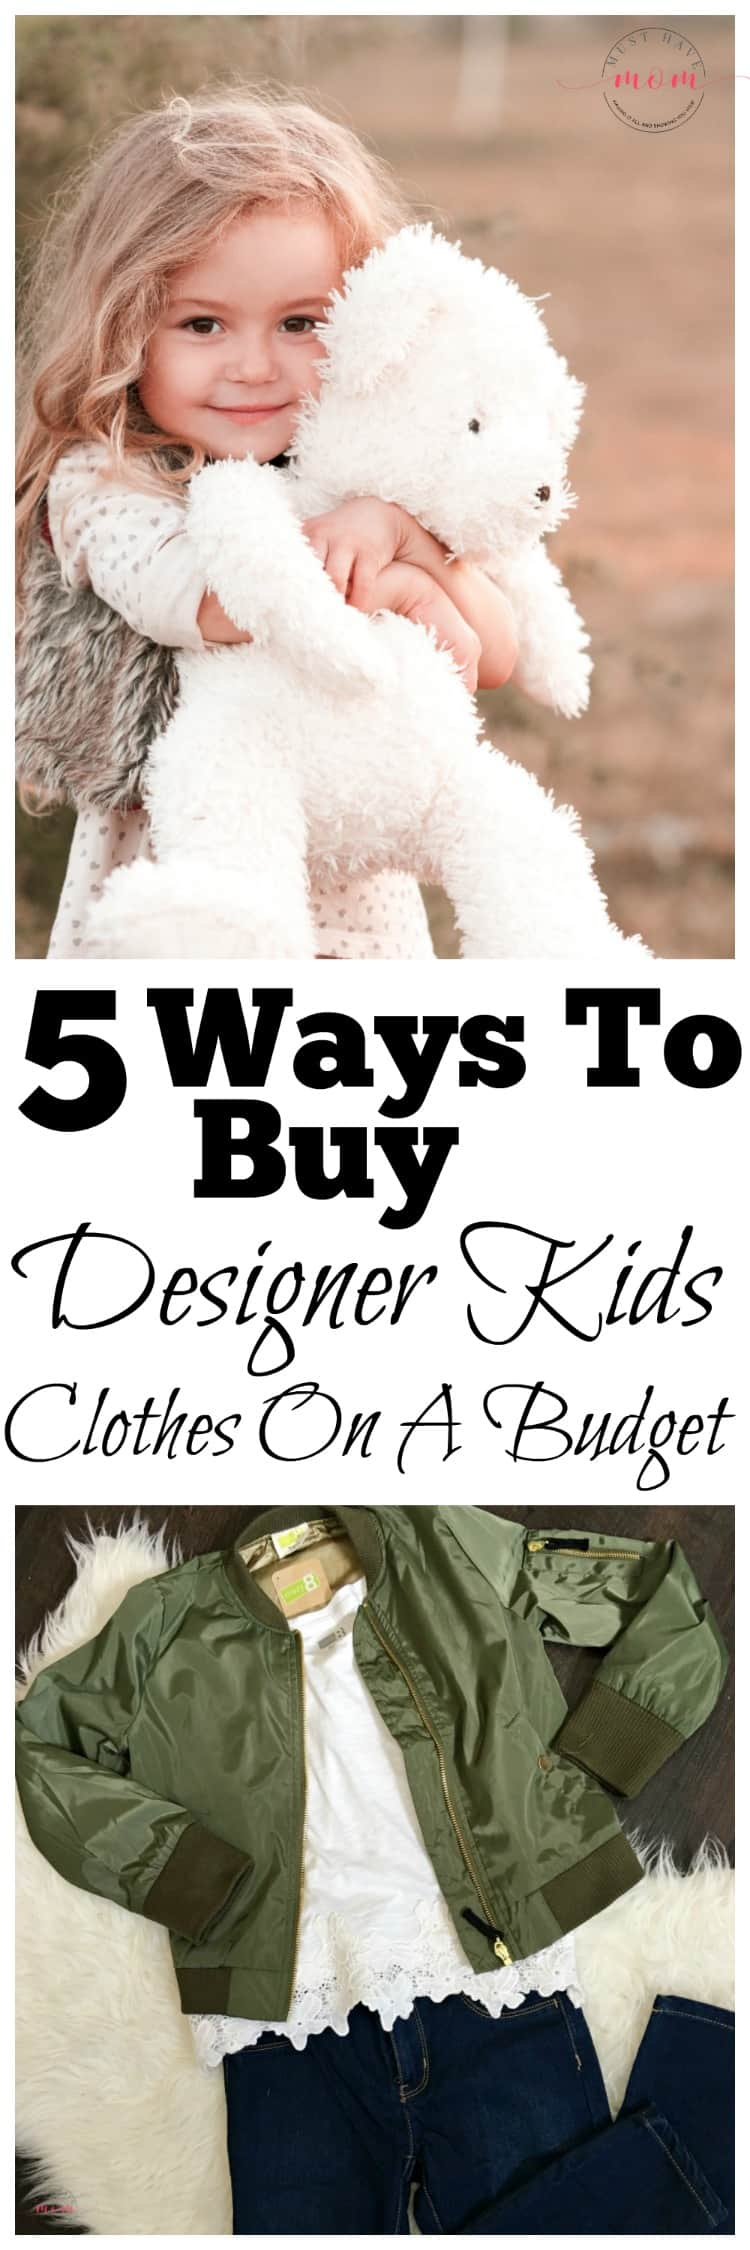 5 Ways to buy designer kids clothes on a budget! How to get kids clothes cheap.